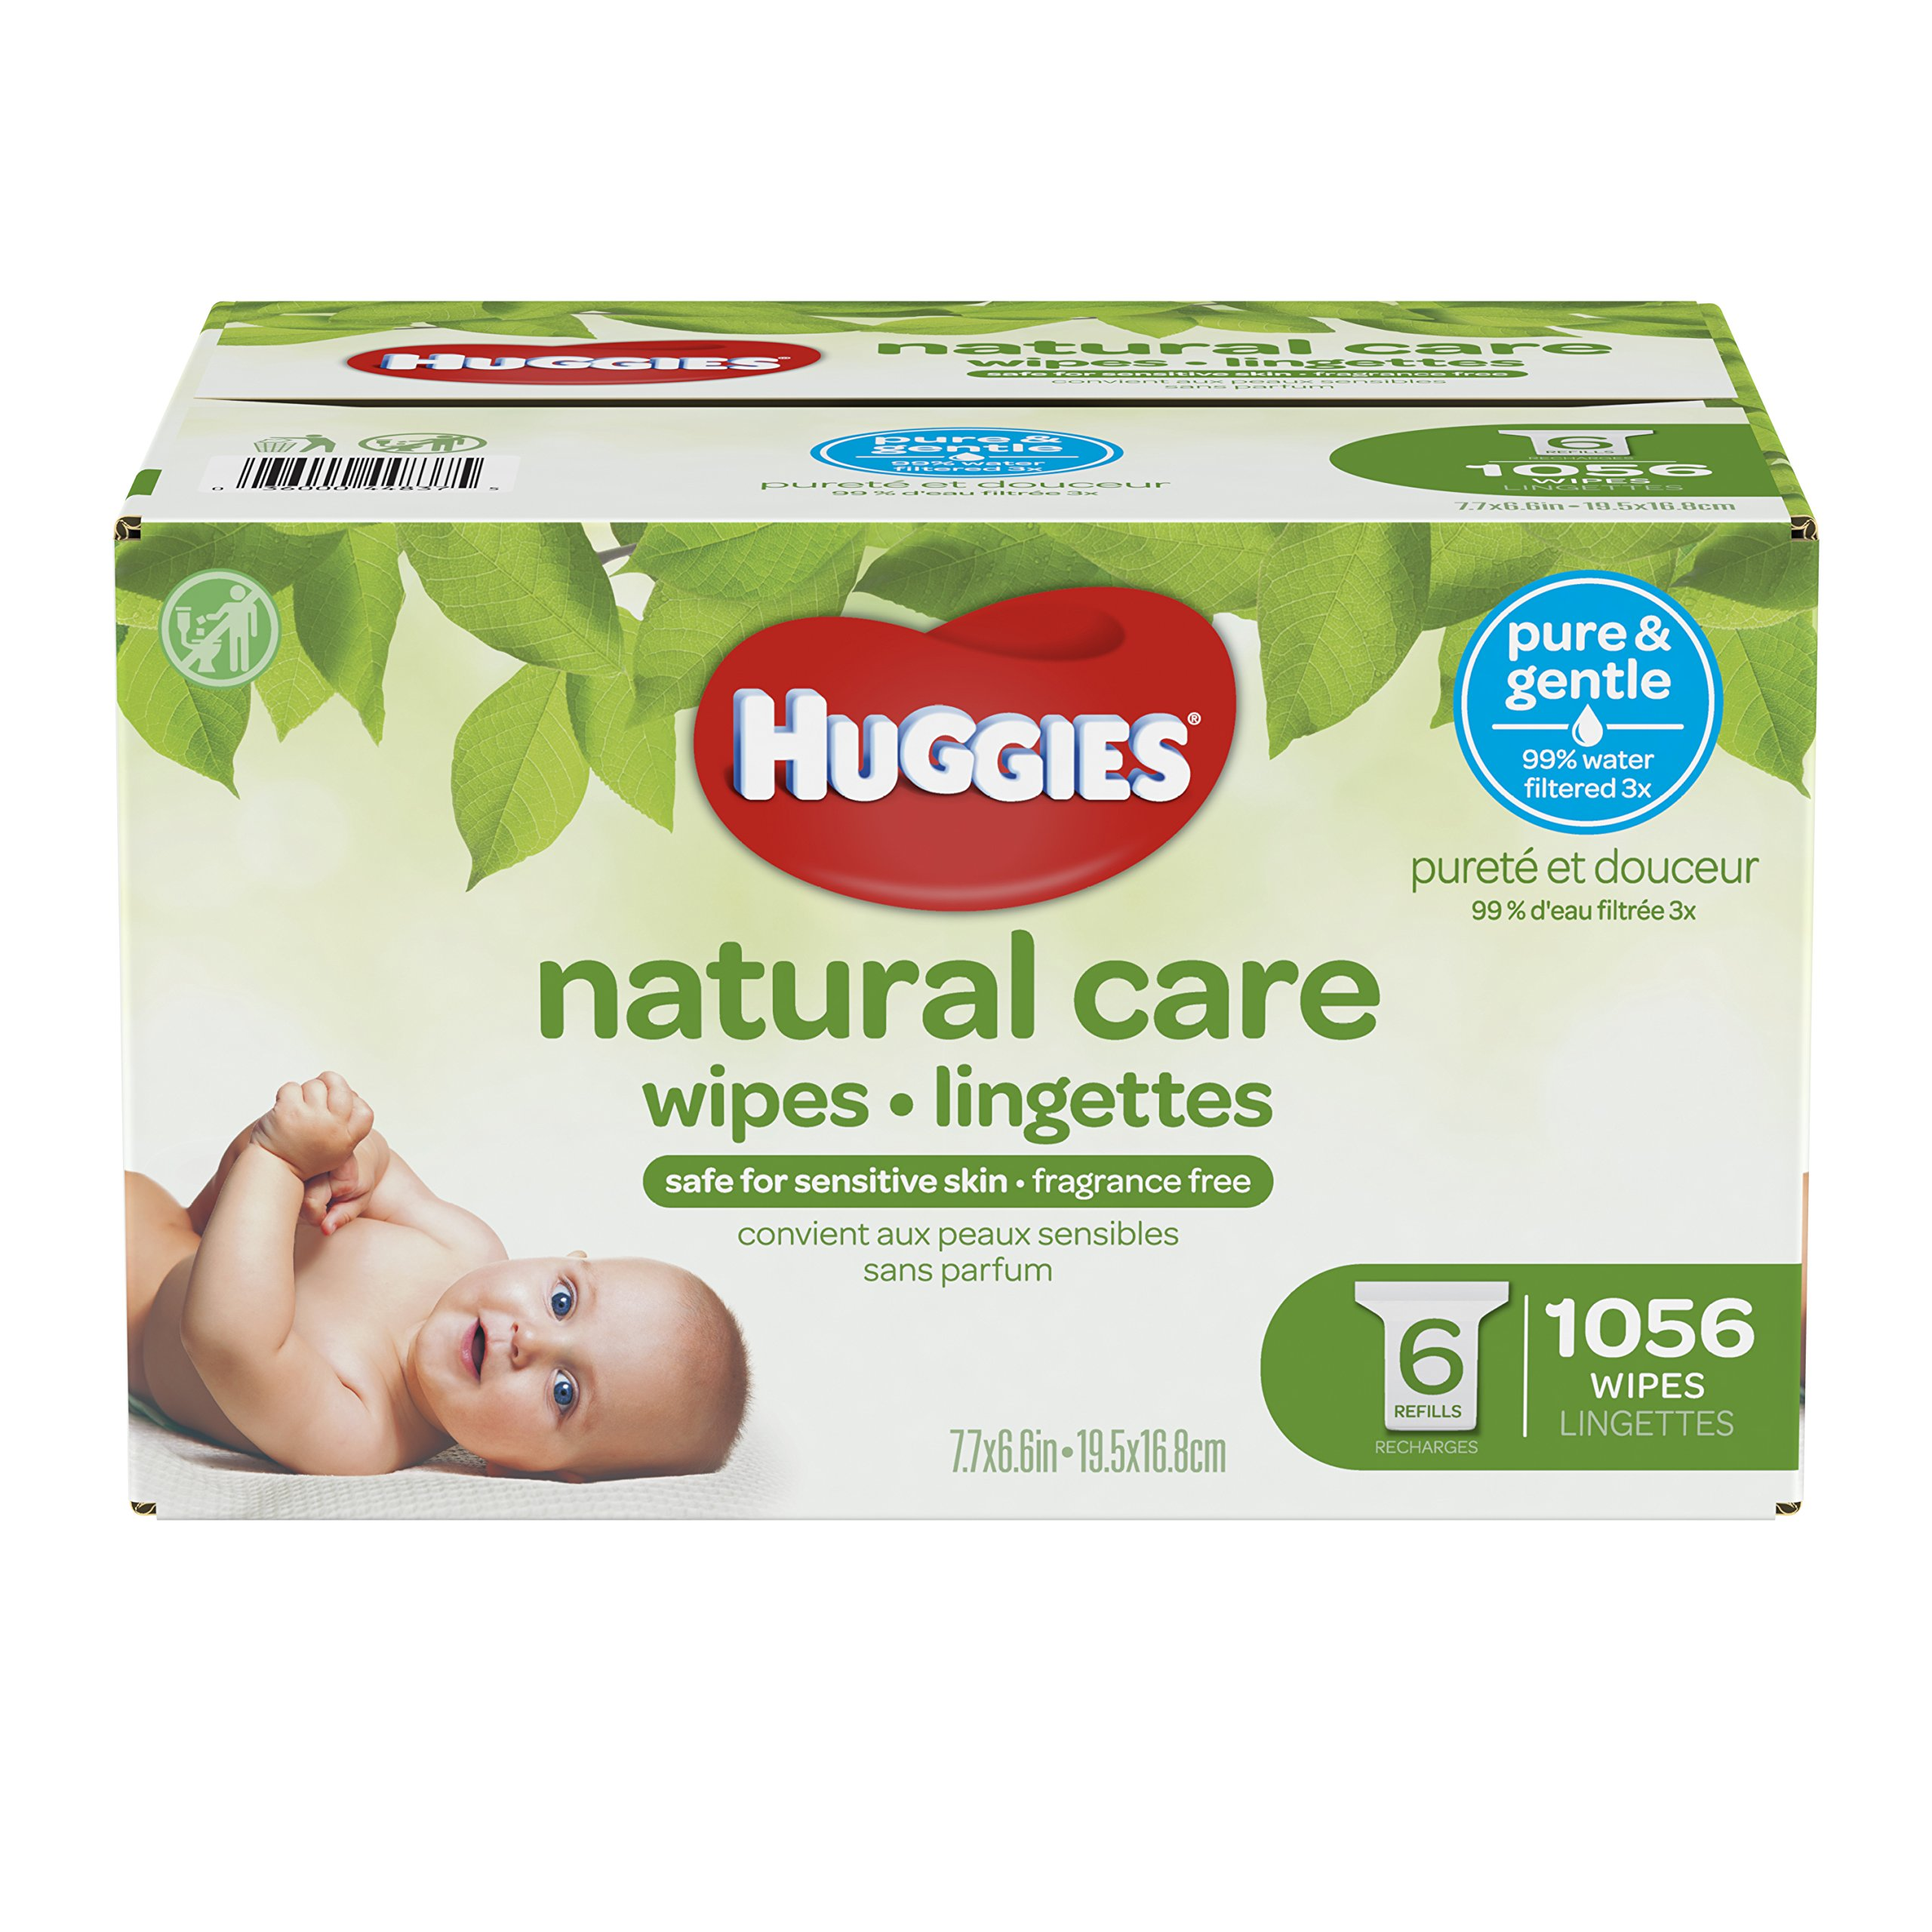 Huggies Natural Care Unscented Baby Wipes, Sensitive, 6 Refill Packs and Clutch 'N' Clean (Old Version) product image